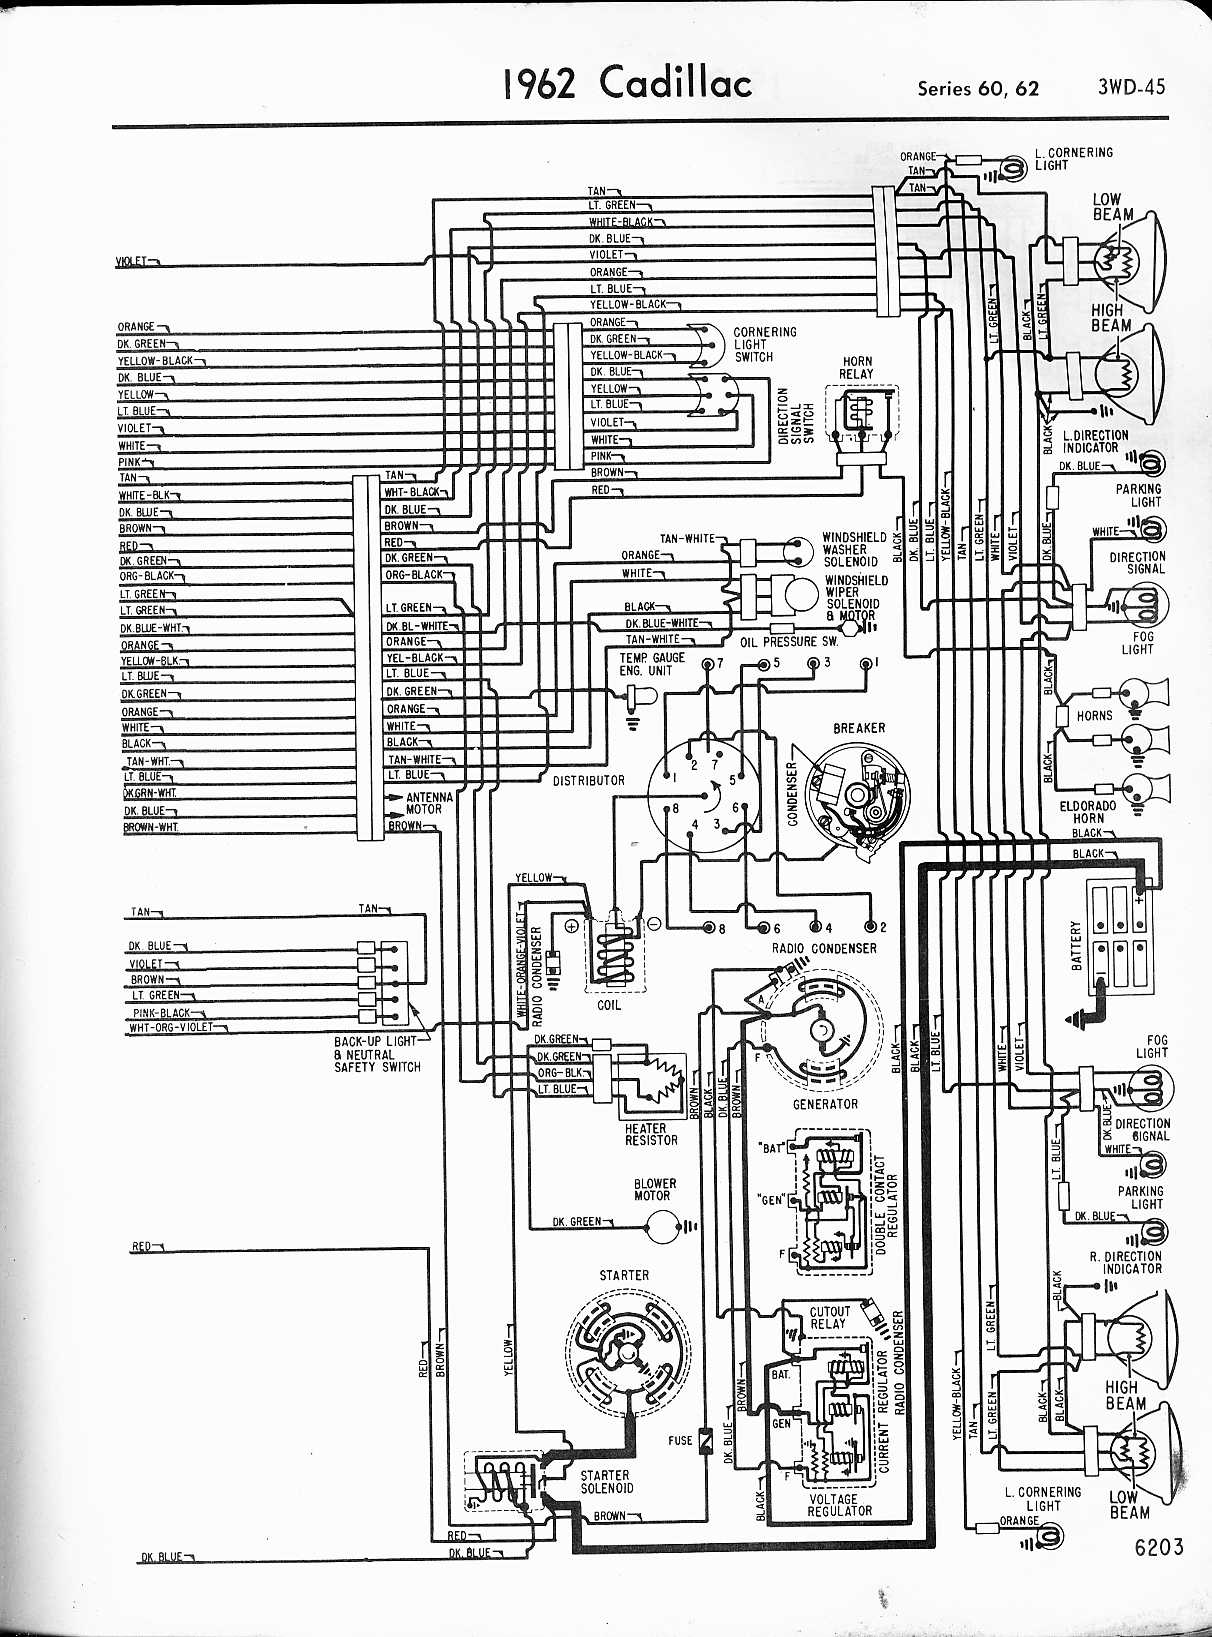 Mustang Wiring Diagrams as well Windshield Wiper Wiring Diagram For 1966 Ford Mustang additionally 1956 Cadillac Wiring Diagram likewise Chevy Corvair Engine Diagram furthermore WiringDiagrams. on 1962 cadillac vacuum diagram